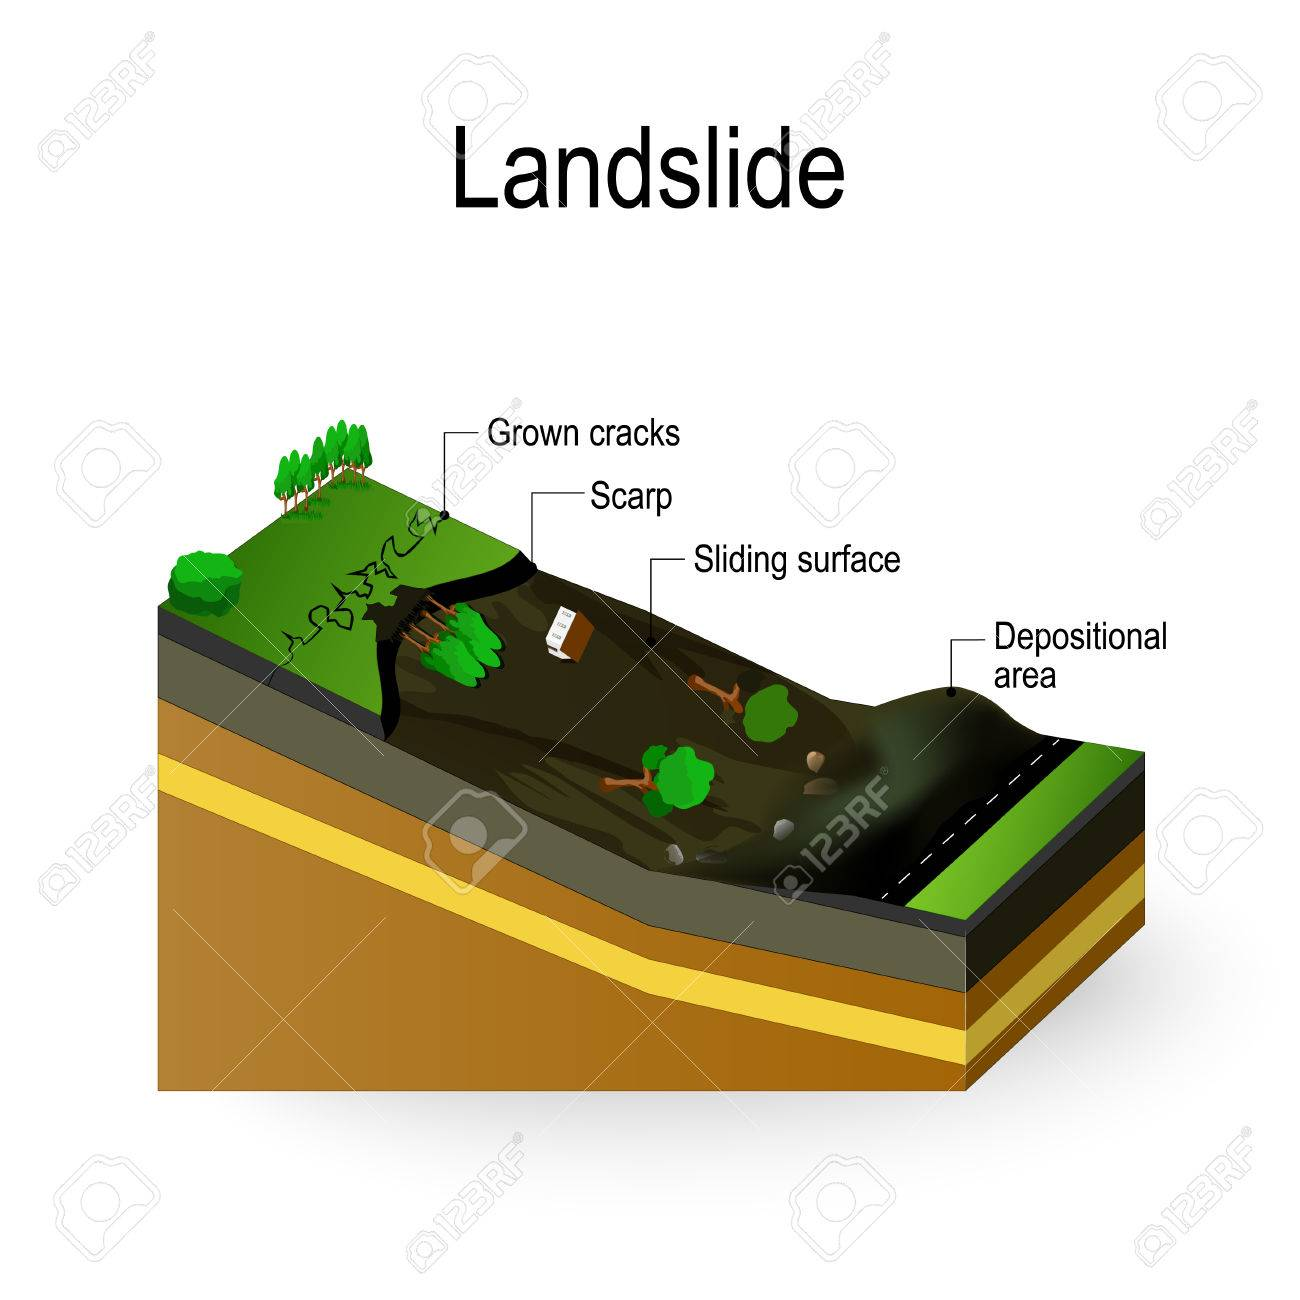 Landslide diagram landslip is debris flow surges down a slope landslide diagram landslip is debris flow surges down a slope in response to gravitational processes ccuart Image collections